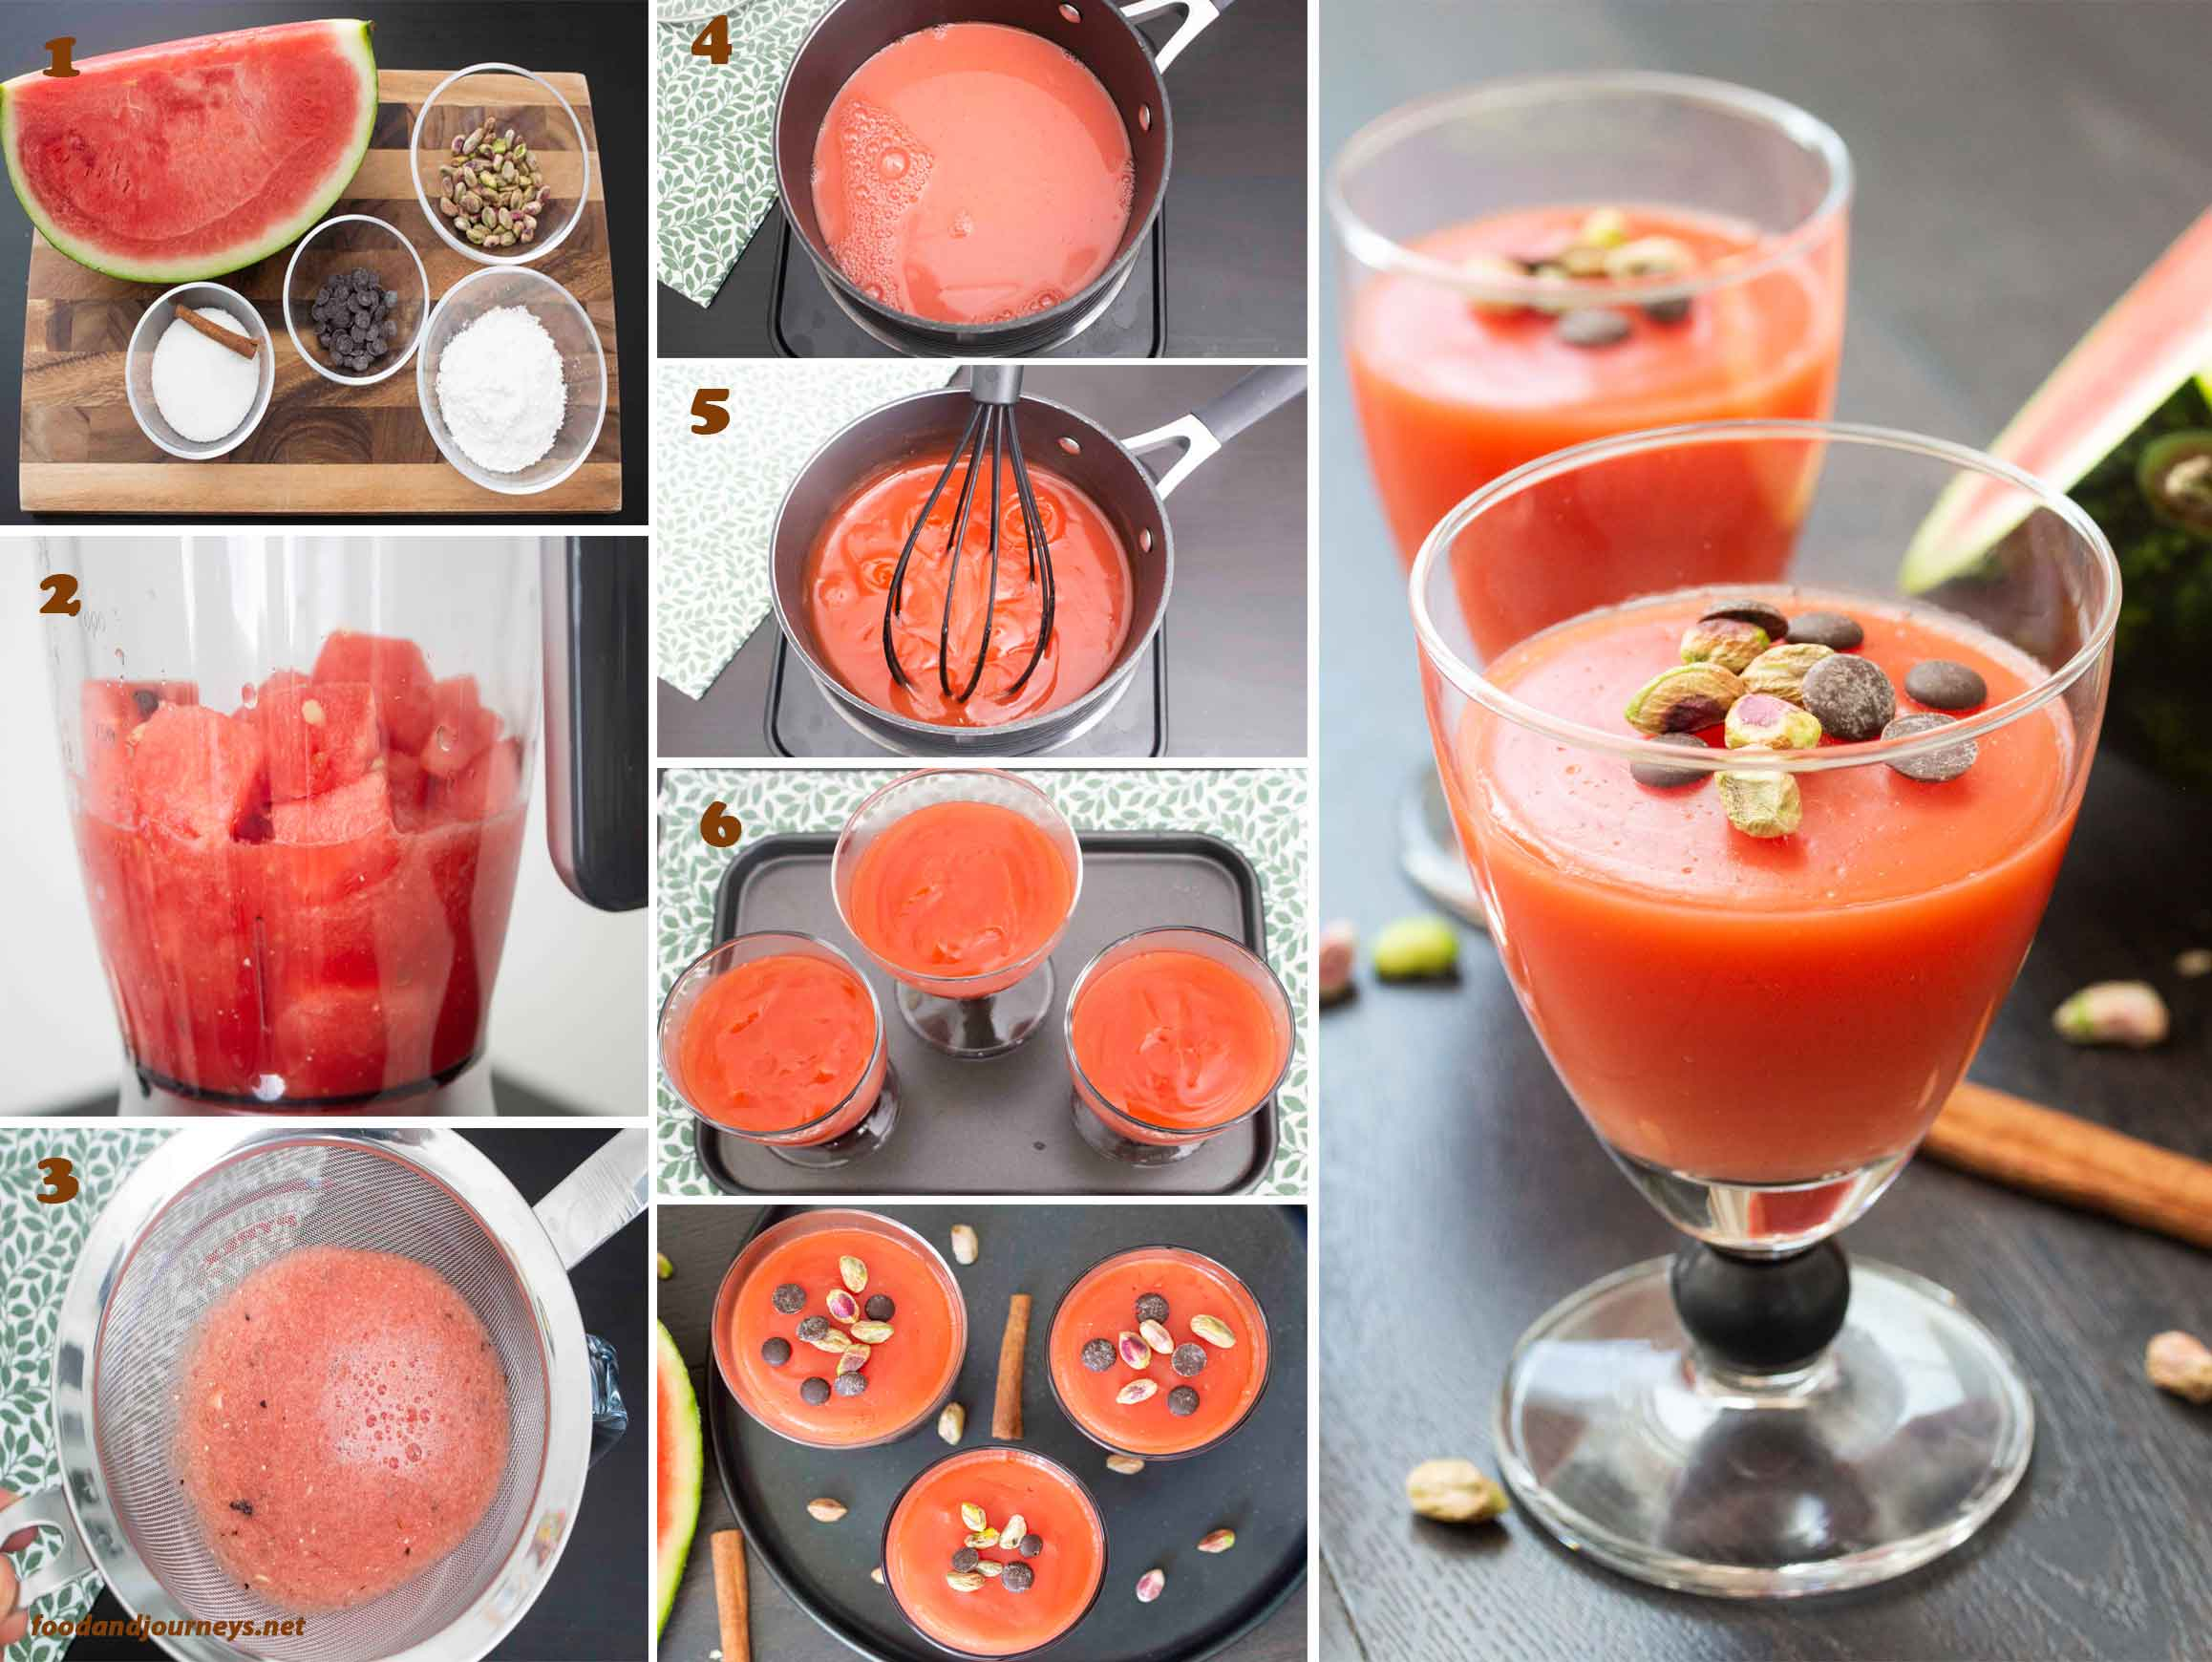 Collage of images showing how to prepare Sicilian Watermelon Jelly (Gelo di Anguria).